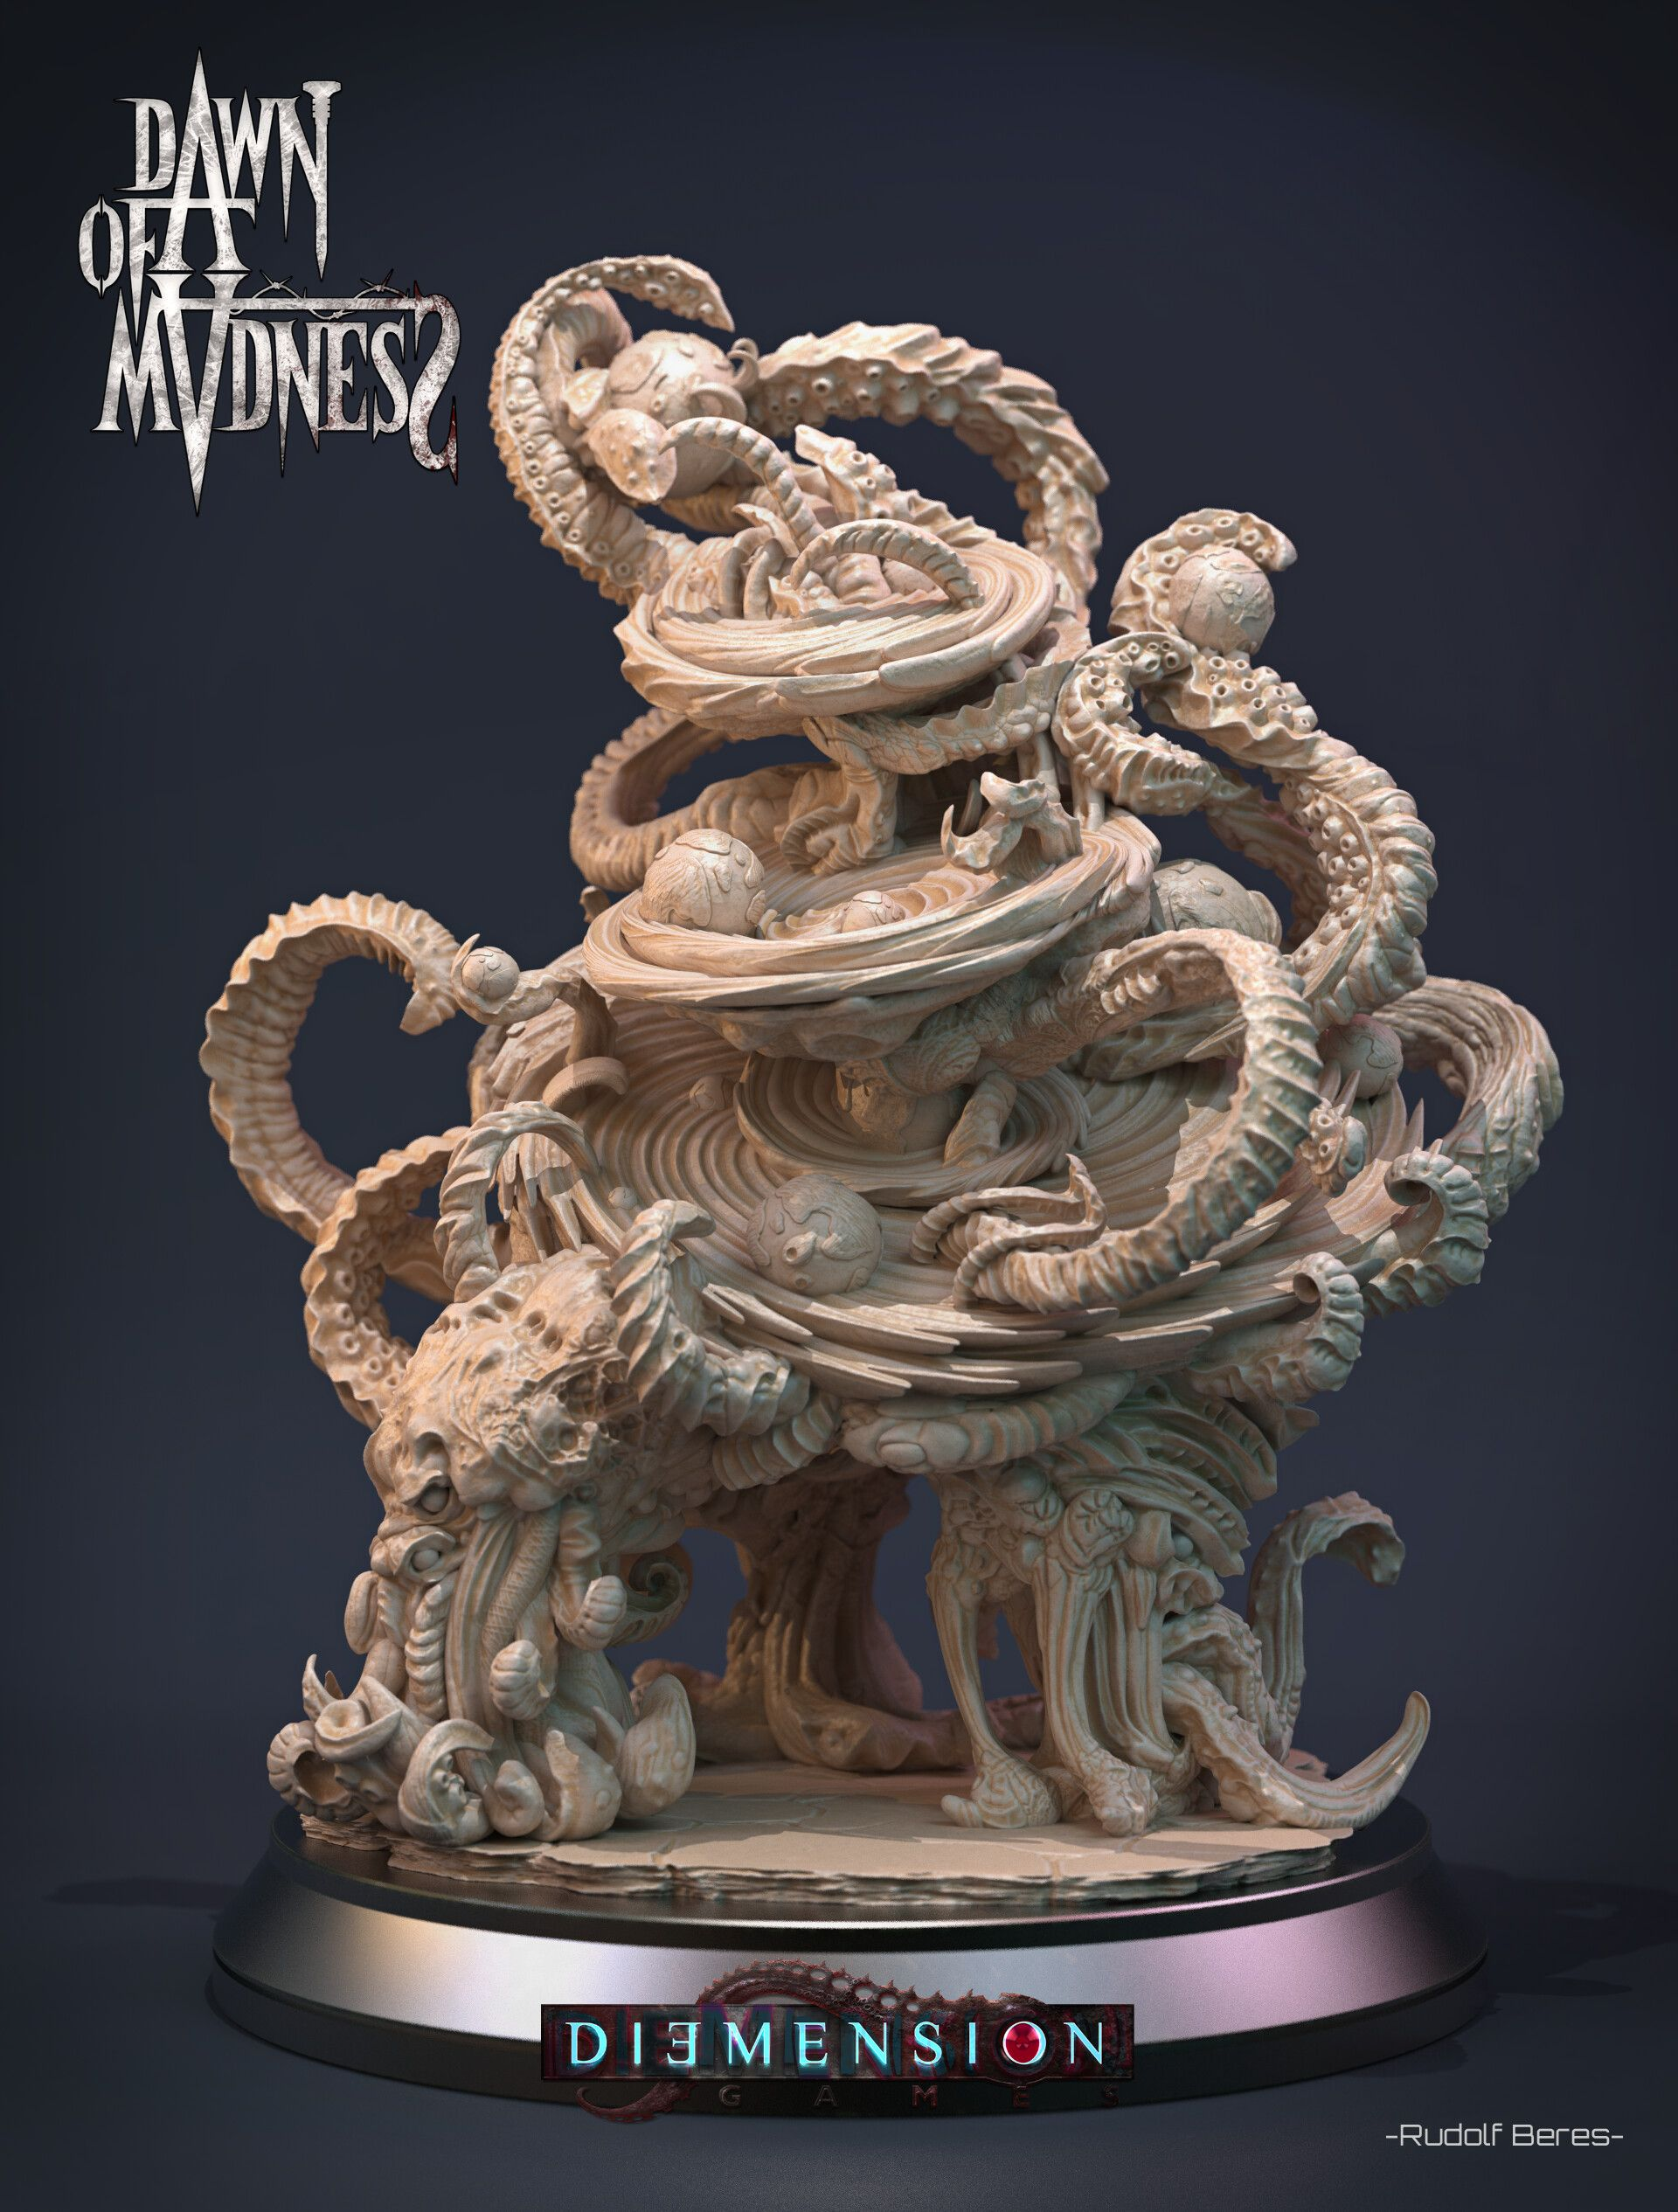 Dawn of Madness Statue Azathoth by Rudolf BéresDawn of